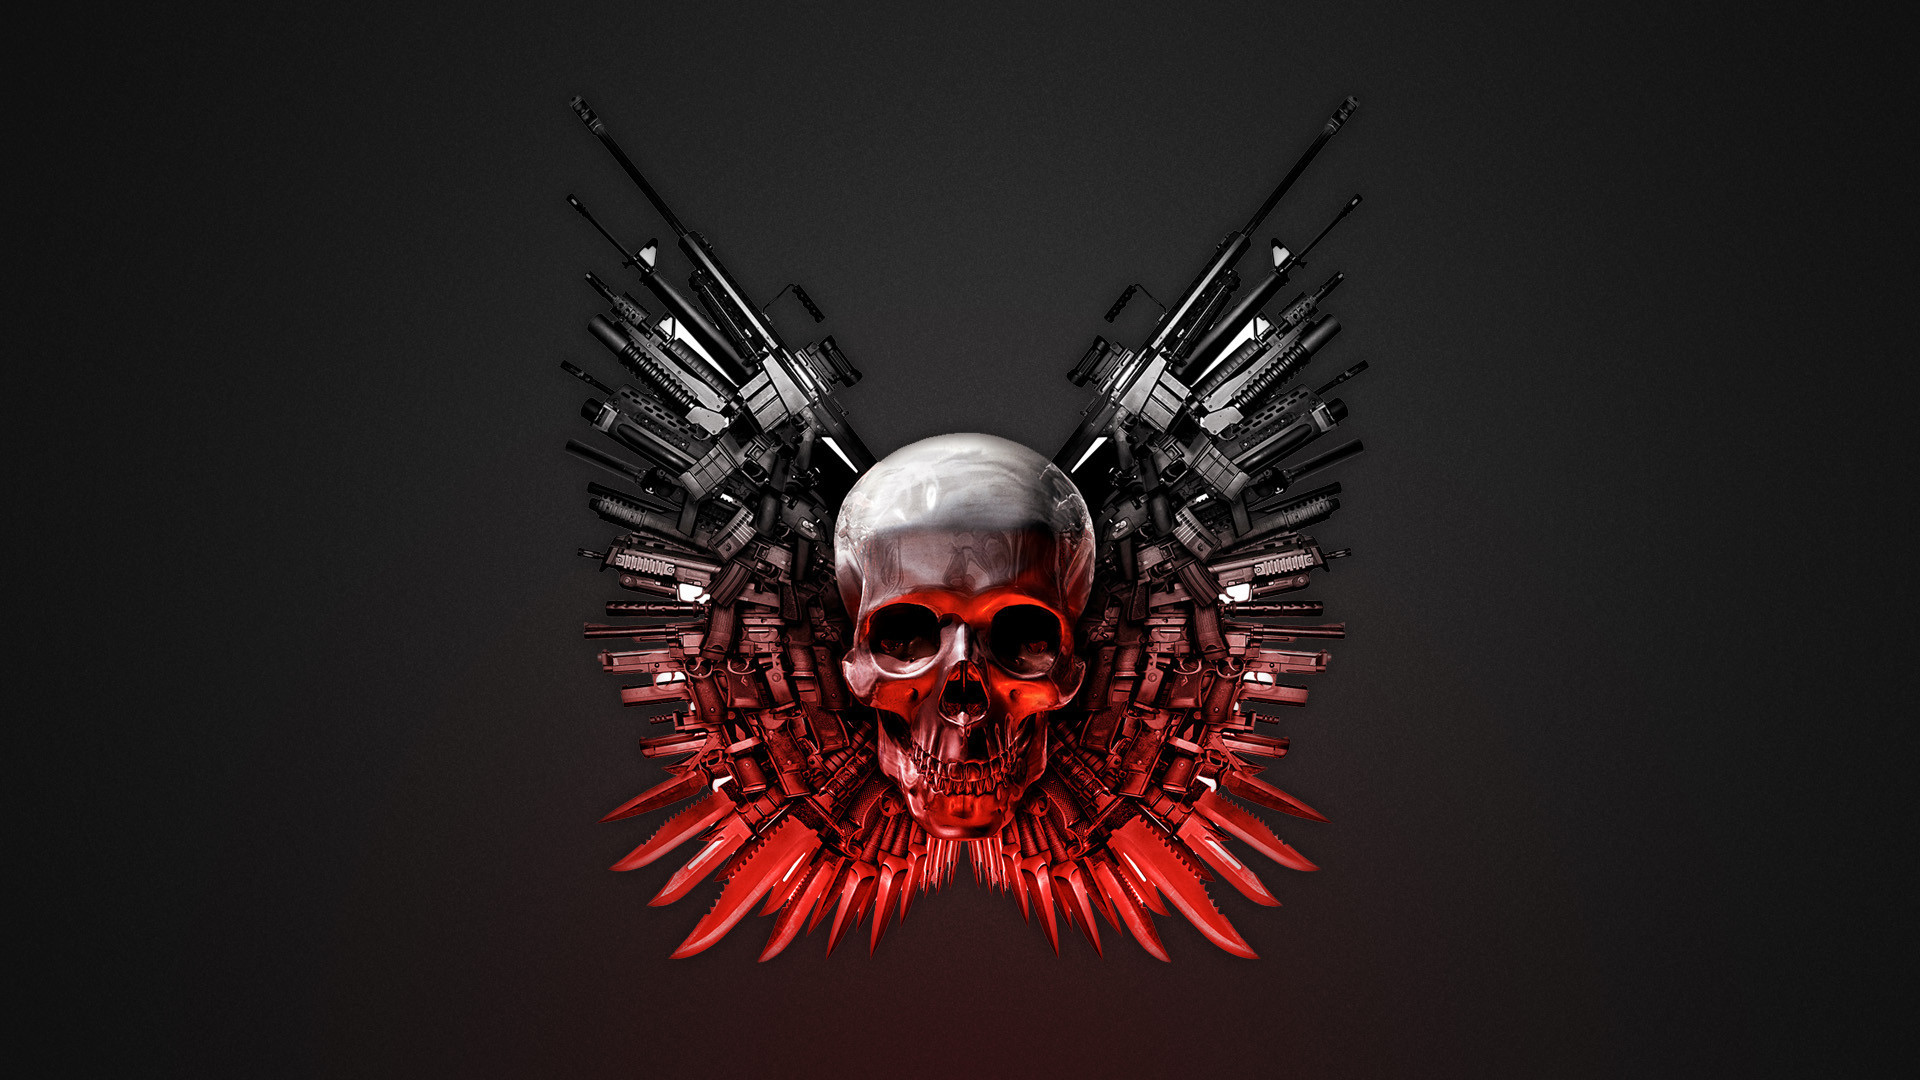 Hd wallpaper gun - The Expendables Weapons Wallpapers Hd Wallpapers